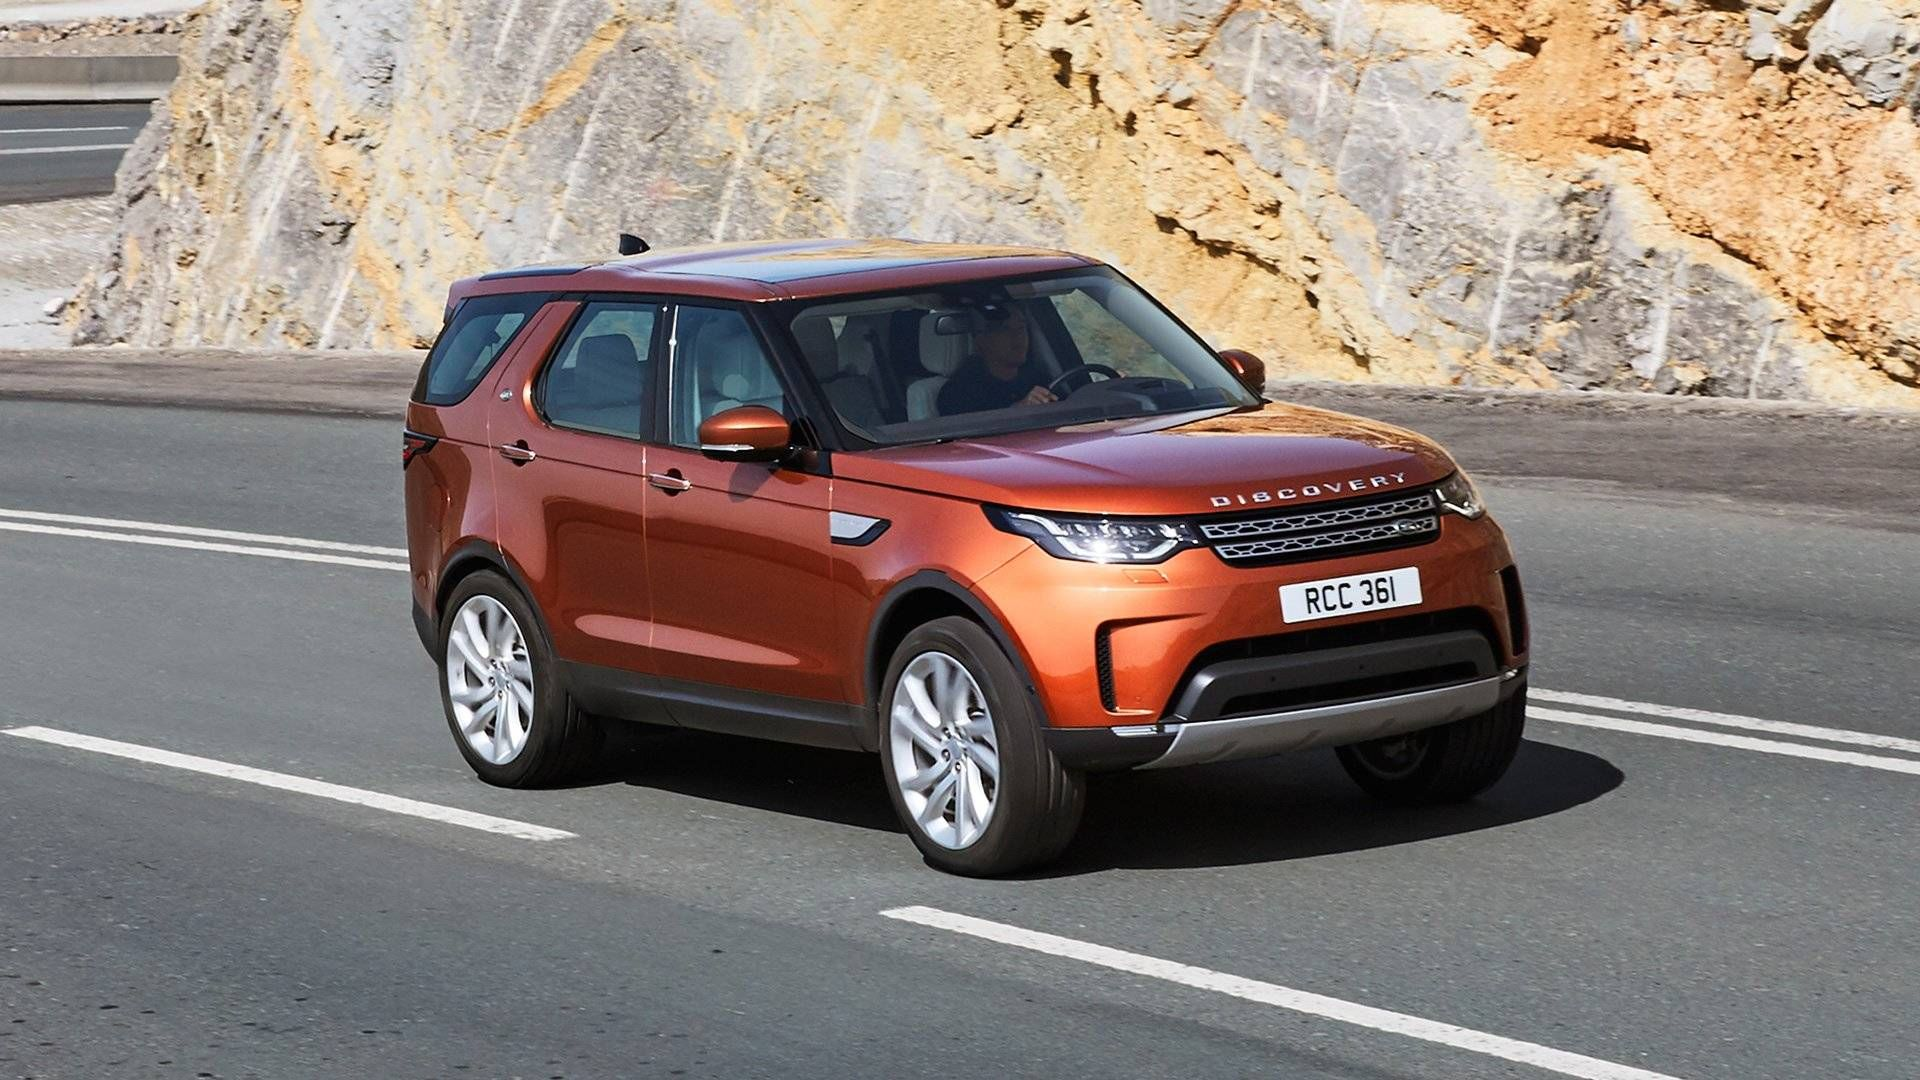 2018 Land Rover Discovery Diesel Review 3 Rows And 33 Miles Per Gallon In An All Terrain Package The Land Rover Land Rover Discovery Land Rover Discovery 5